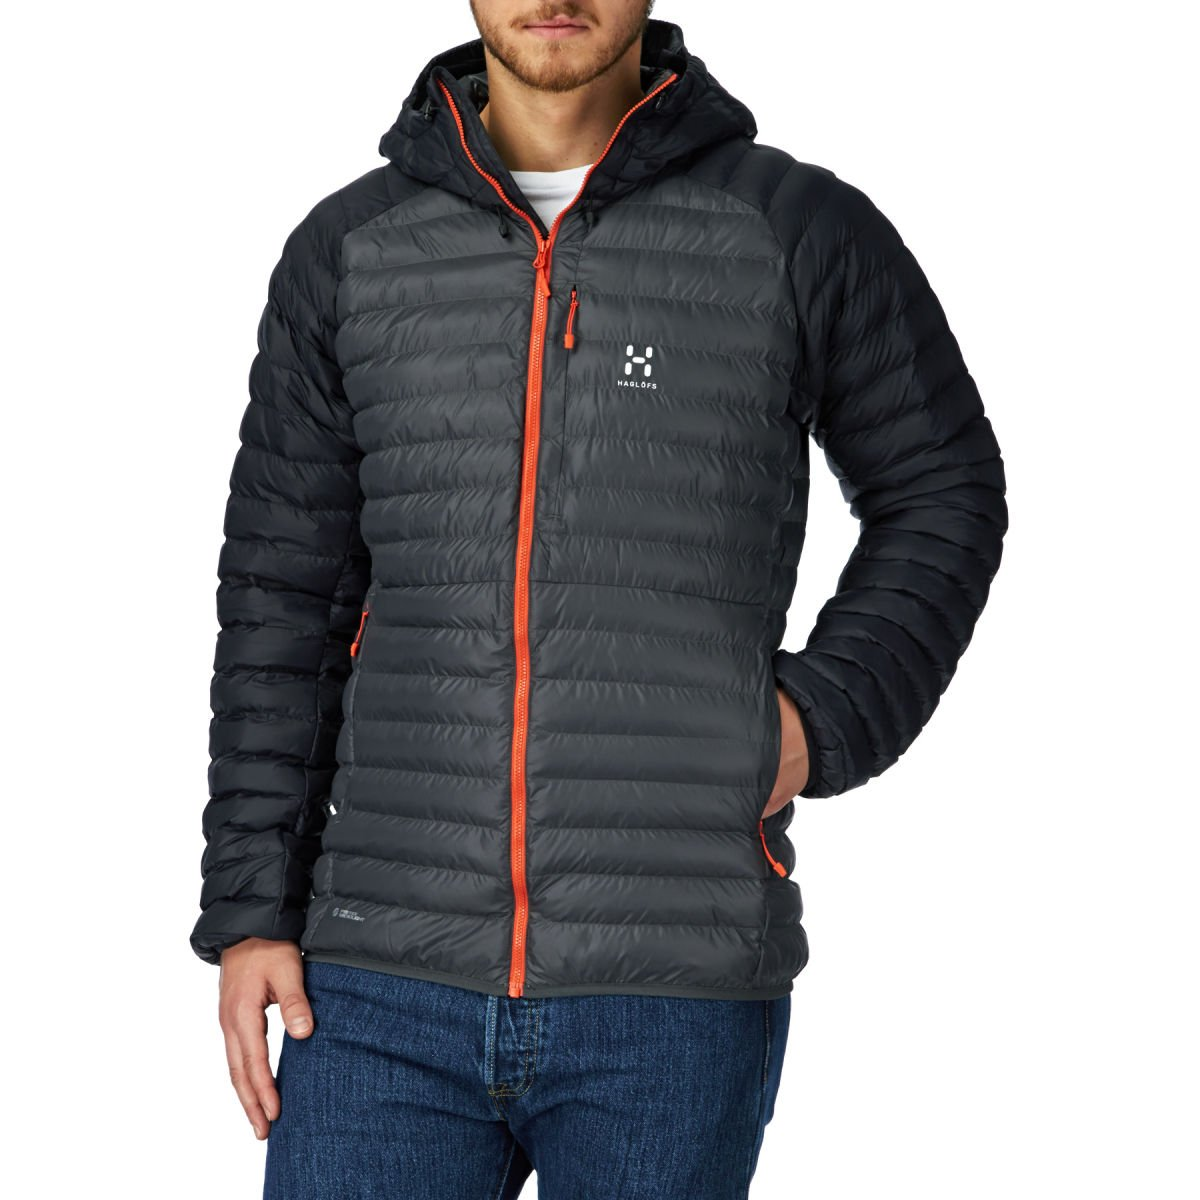 Haglofs Essens Mimic Hooded Jacket – Magnetite/True Black günstig bestellen